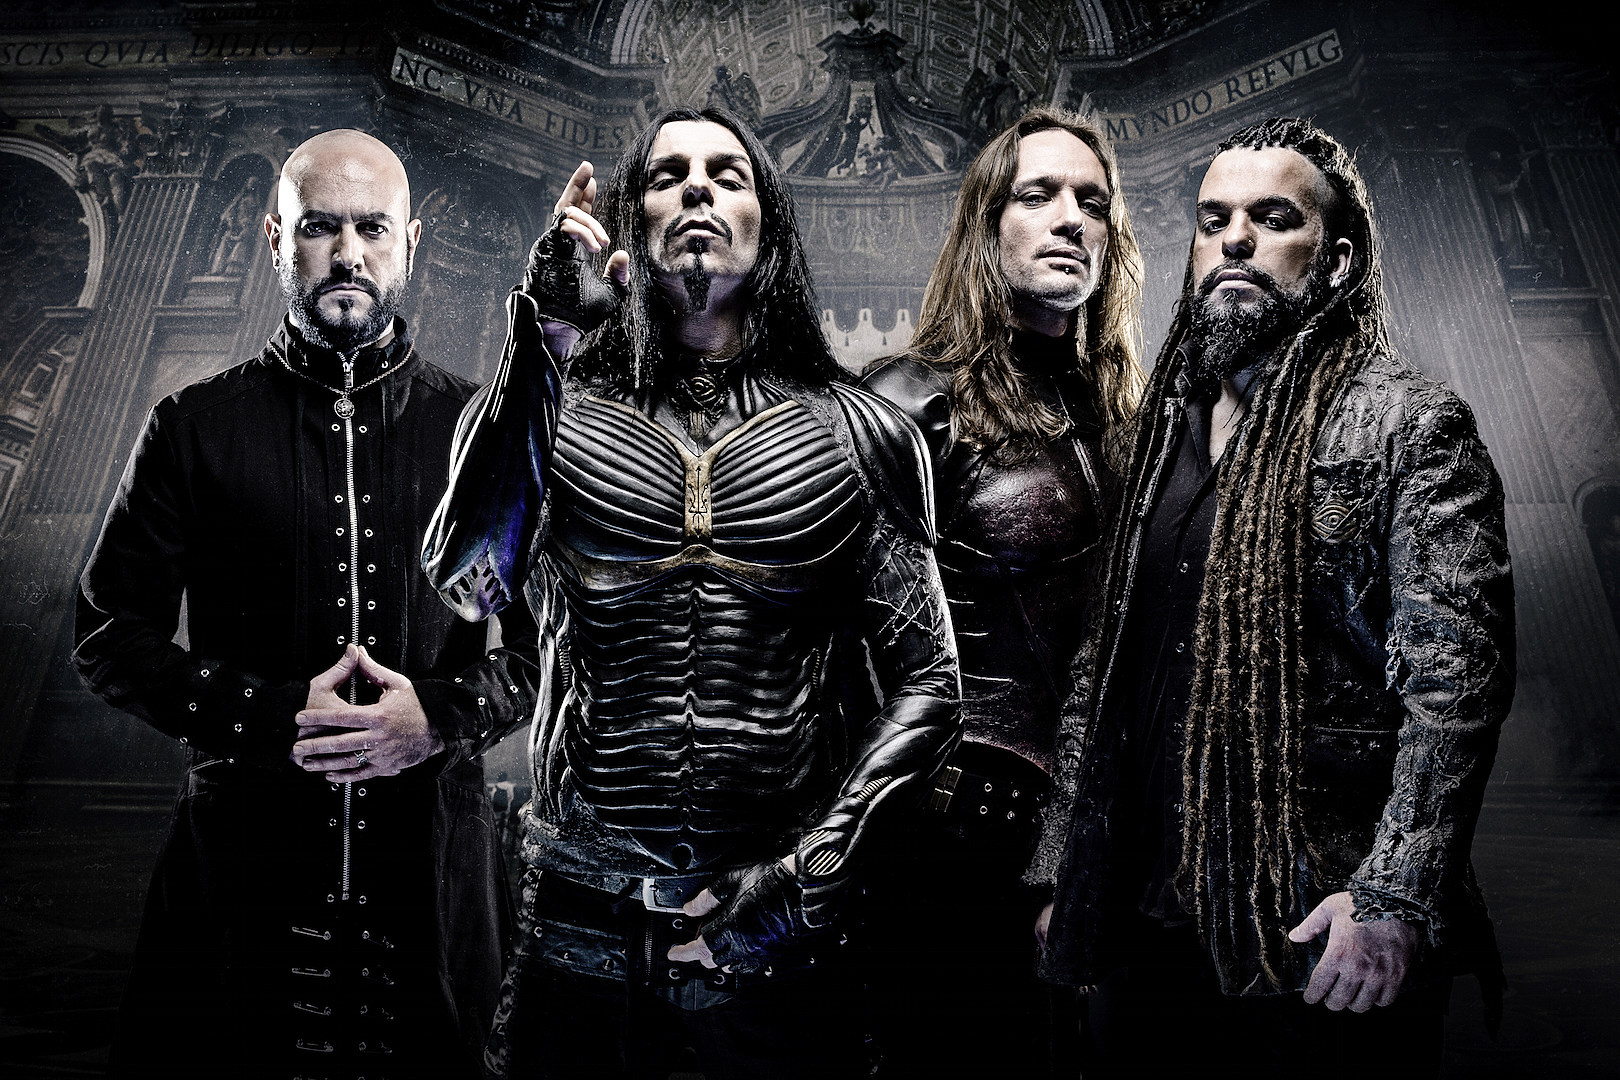 Septicflesh, 'Dogma of Prometheus' - Exclusive Song Premiere